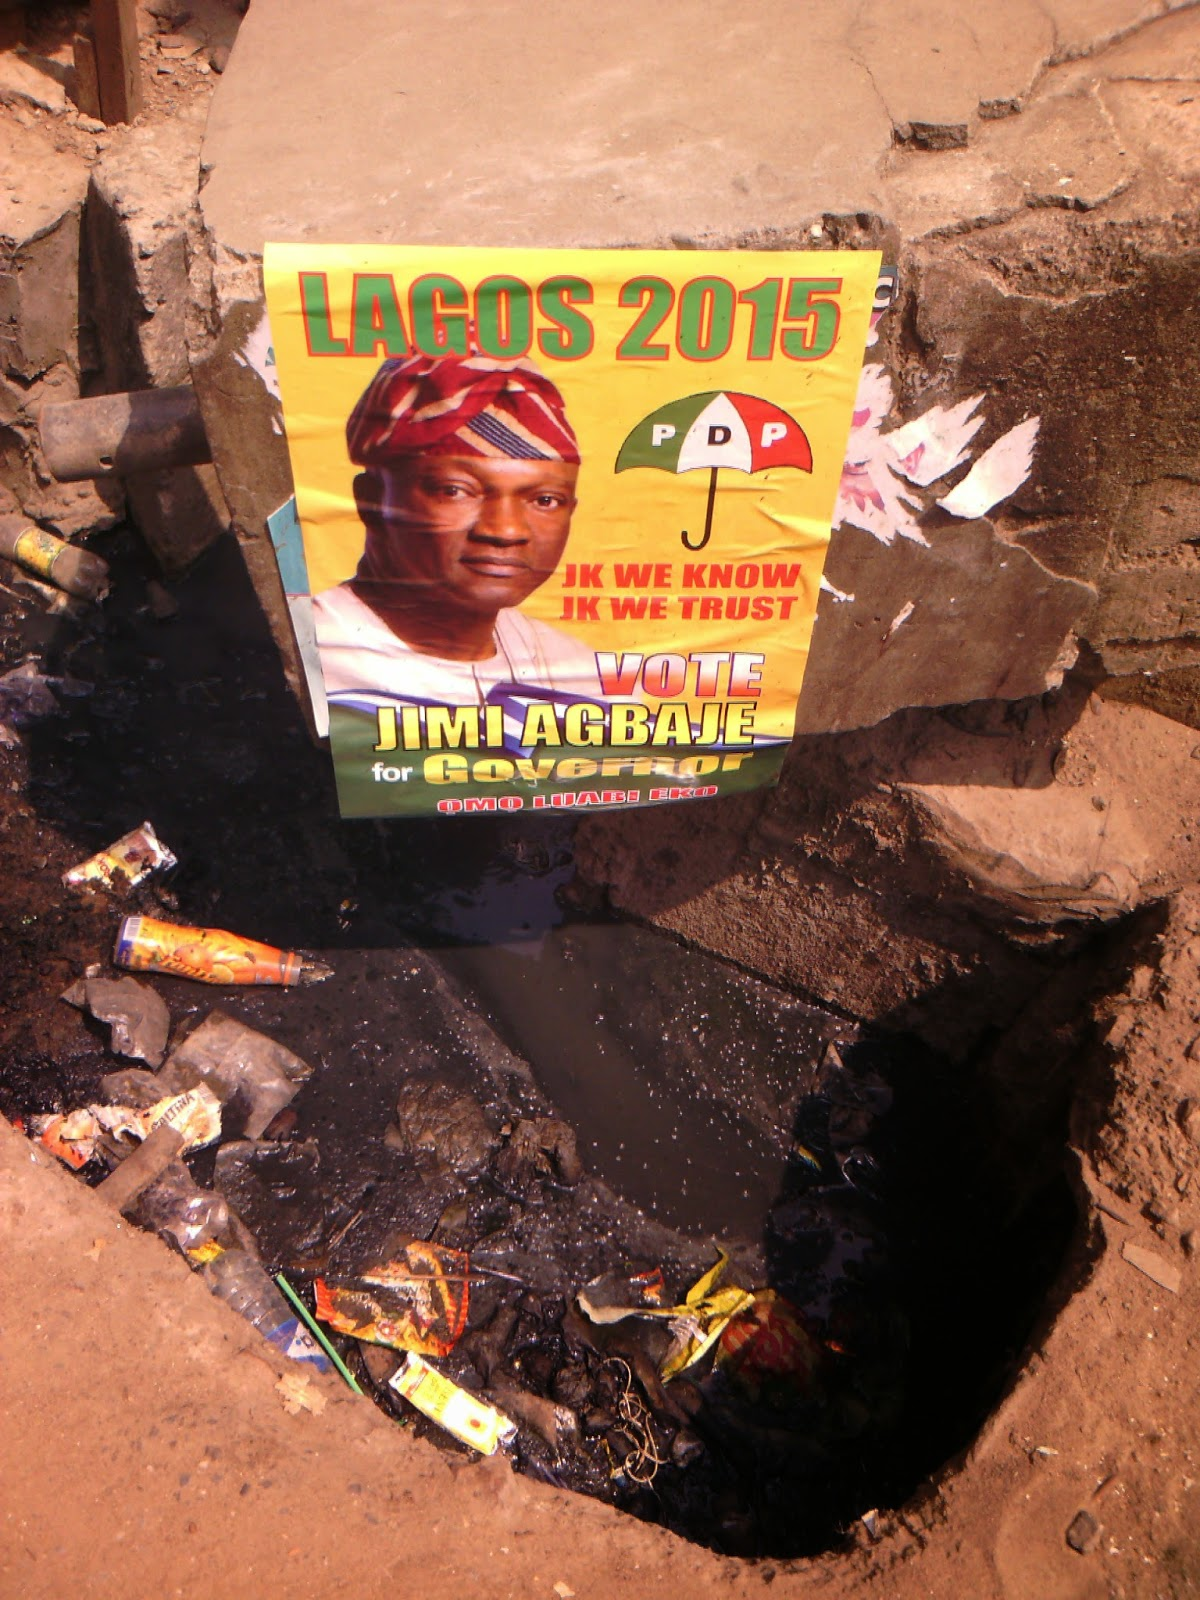 agbaje campaign poster gutter